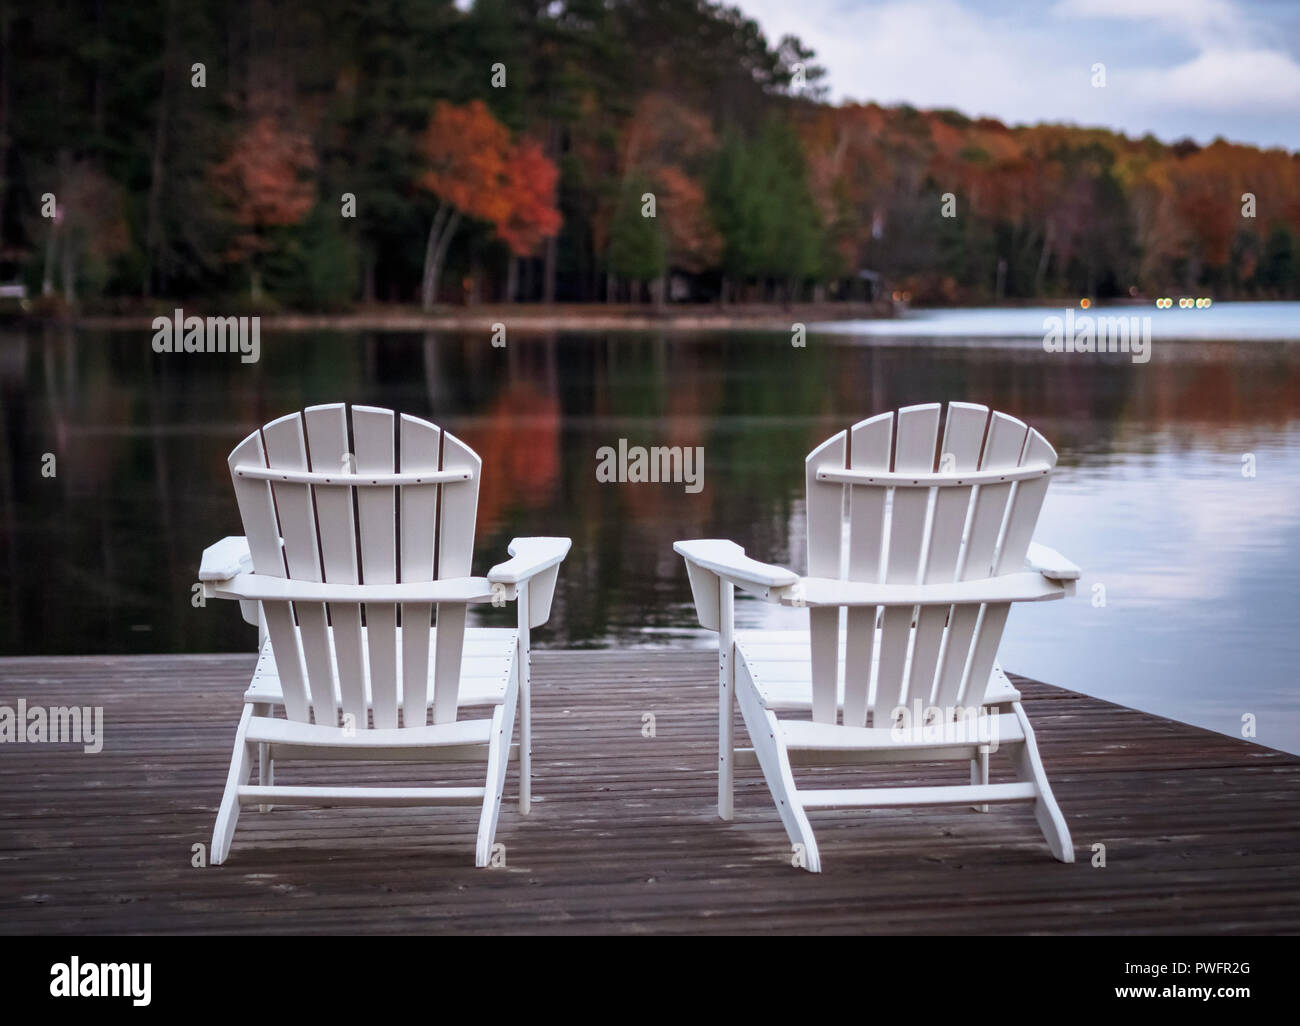 Two Muskoka Chairs in front of lake Benoir, Ontario on a wooden dock during autumn. - Stock Image